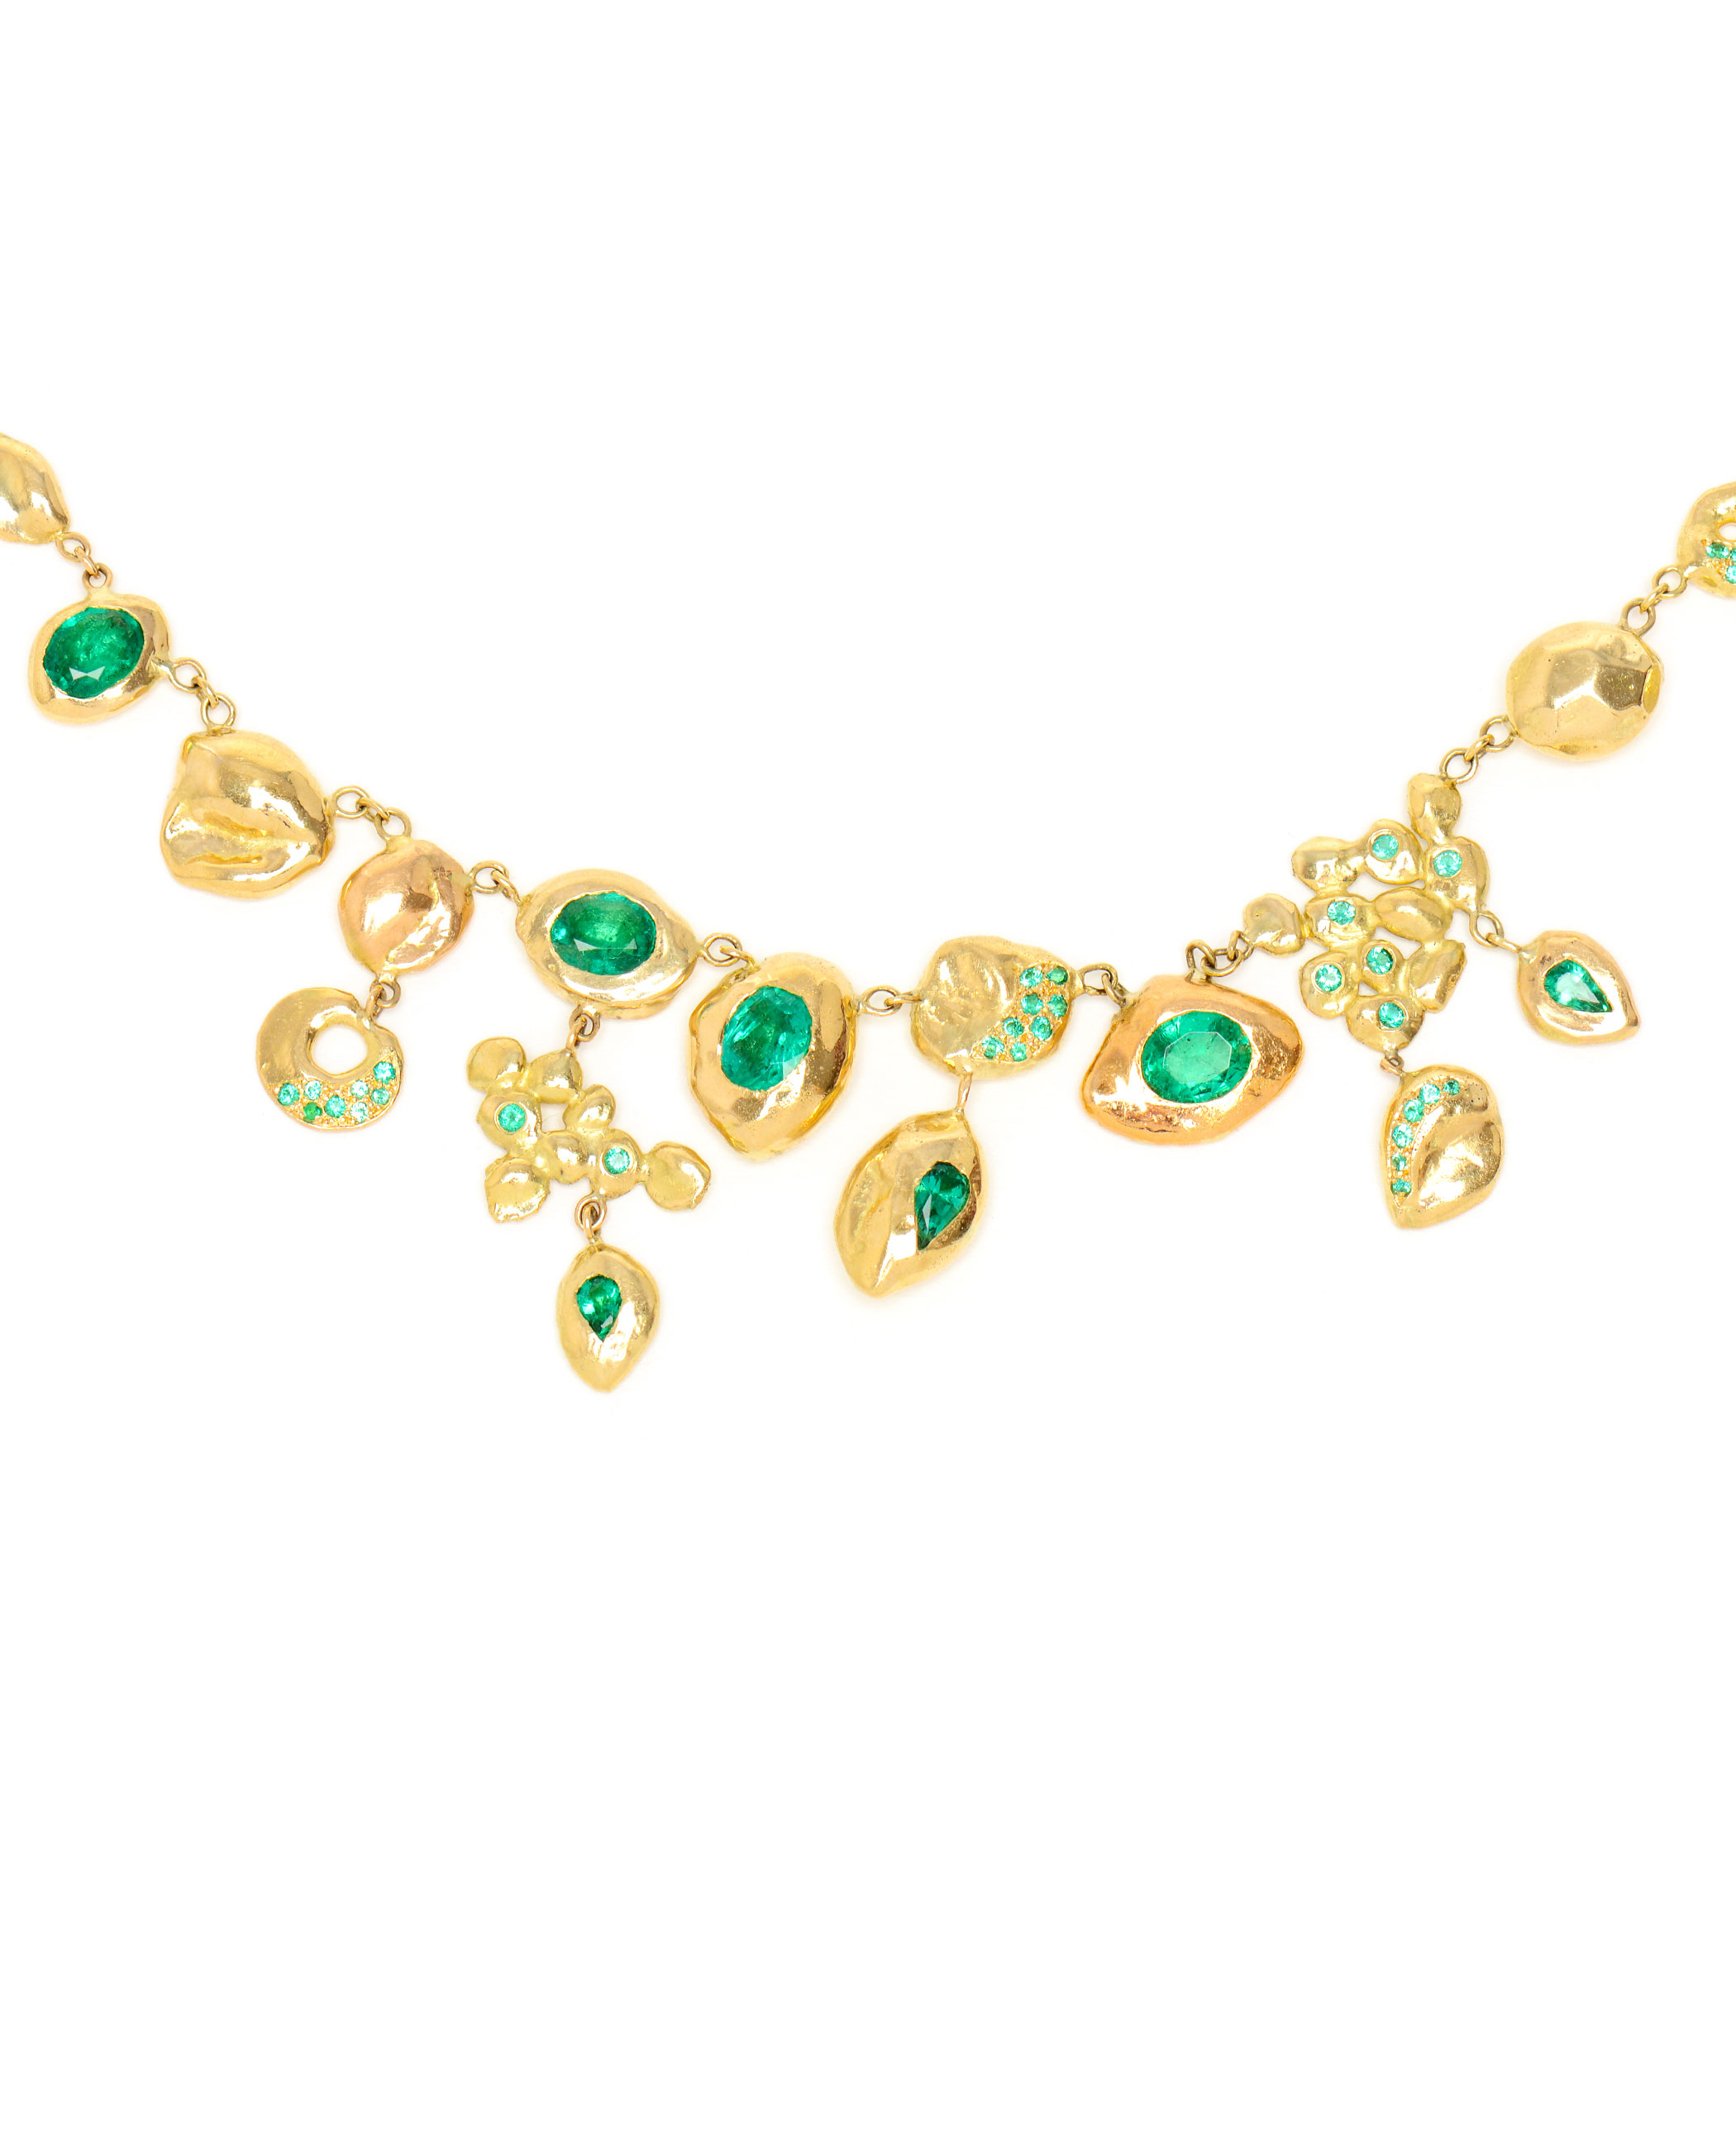 necklace liliandesigns emerald birthstone gold nash original product in lilia may by